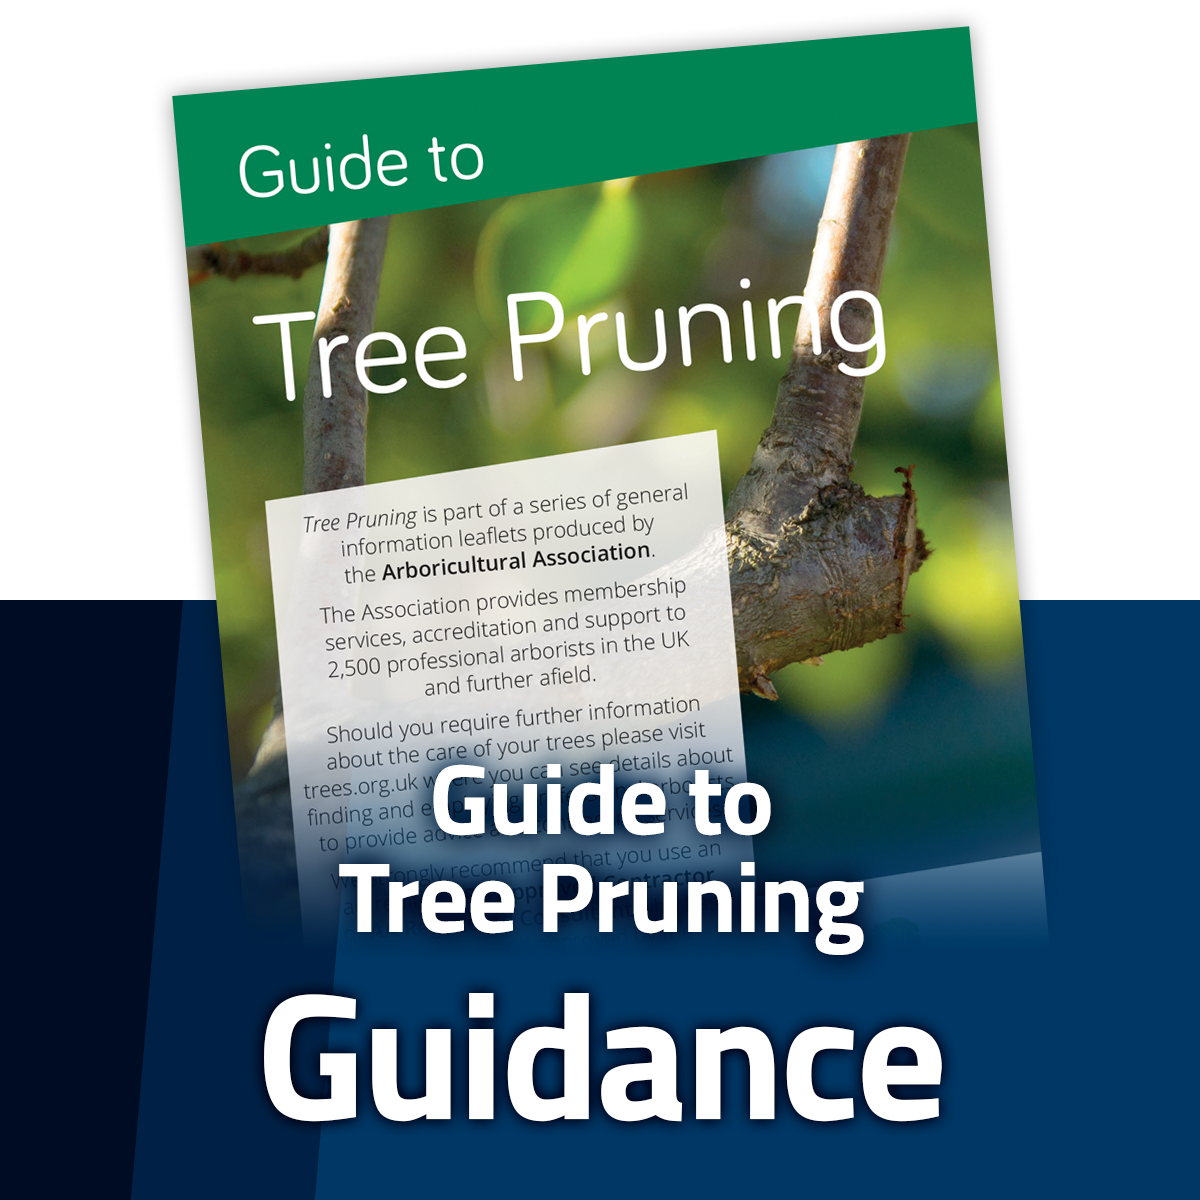 Guide to Tree Pruning